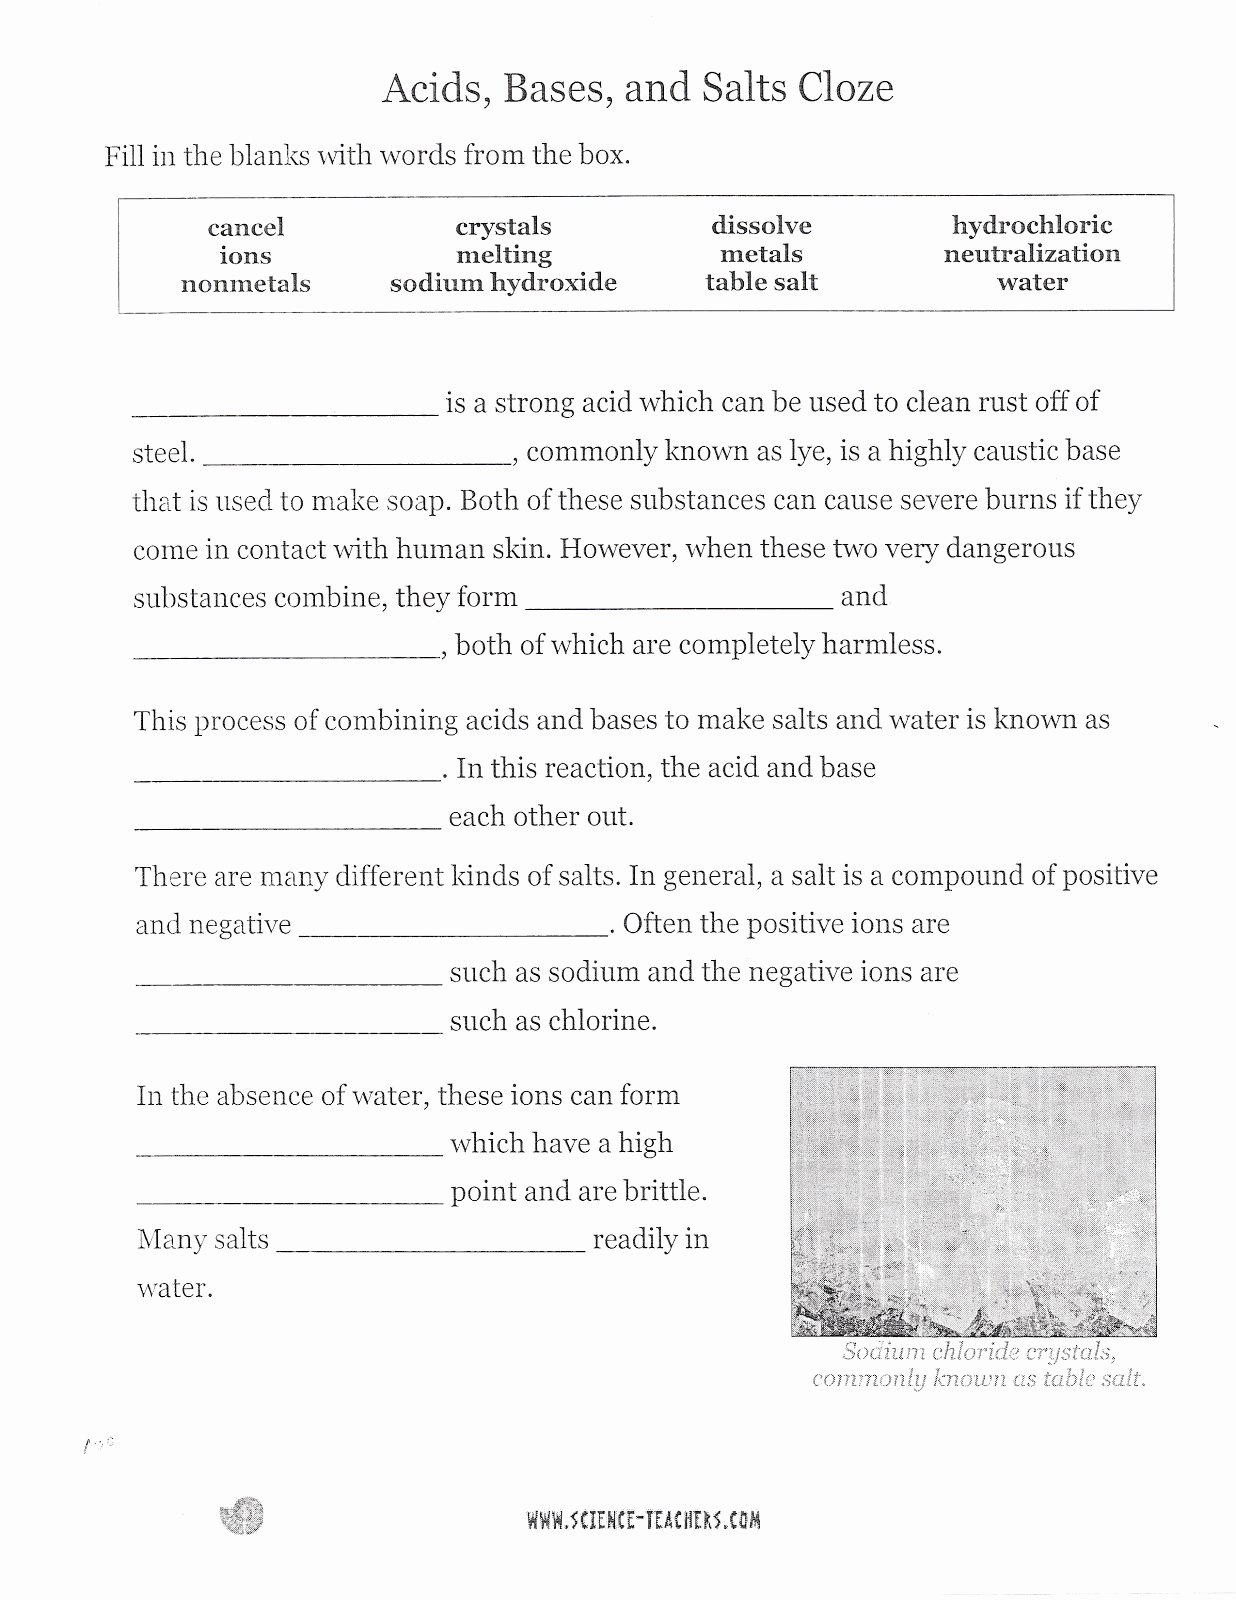 Acid and Bases Worksheet Answers New Dr Gayden S Eighth Grade Science Class November 2012